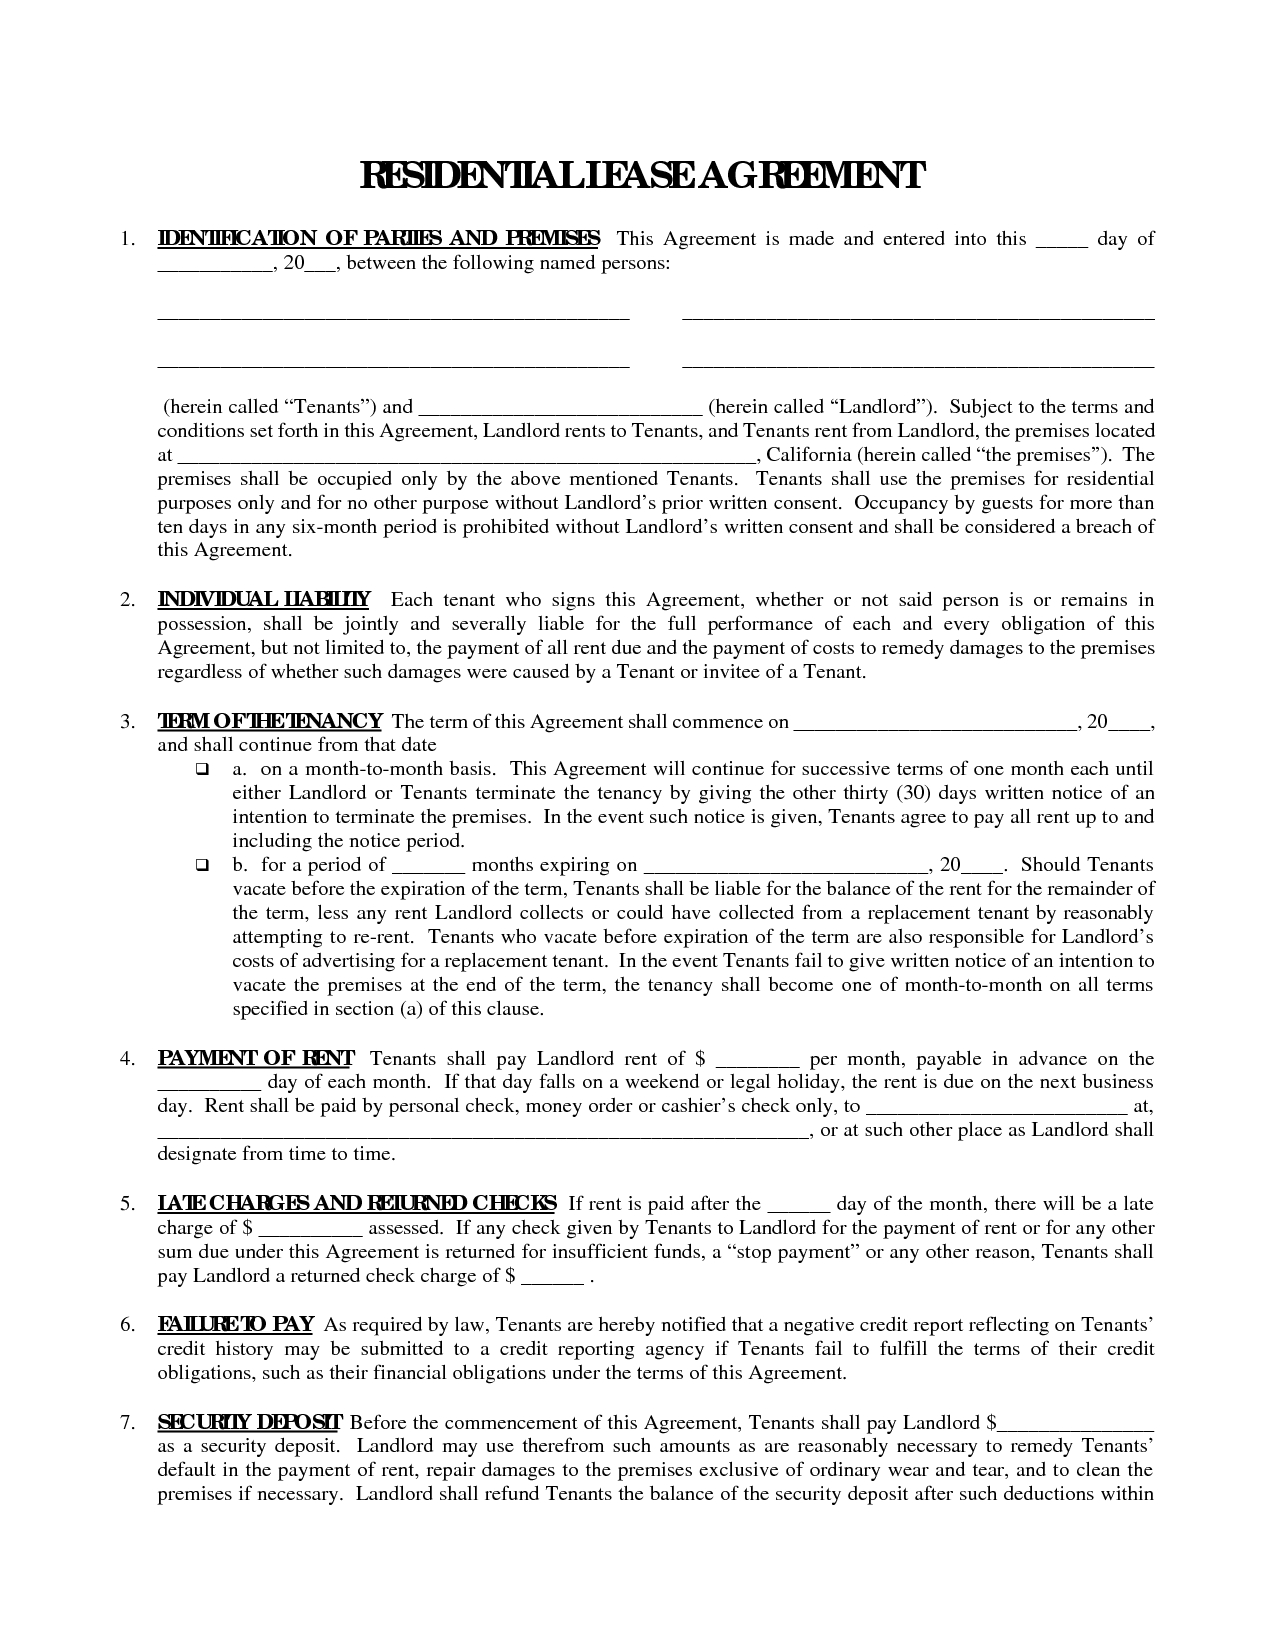 Free Printable Michigan Residential Lease Agreement - 2.9 - Blank Lease Agreement Free Printable